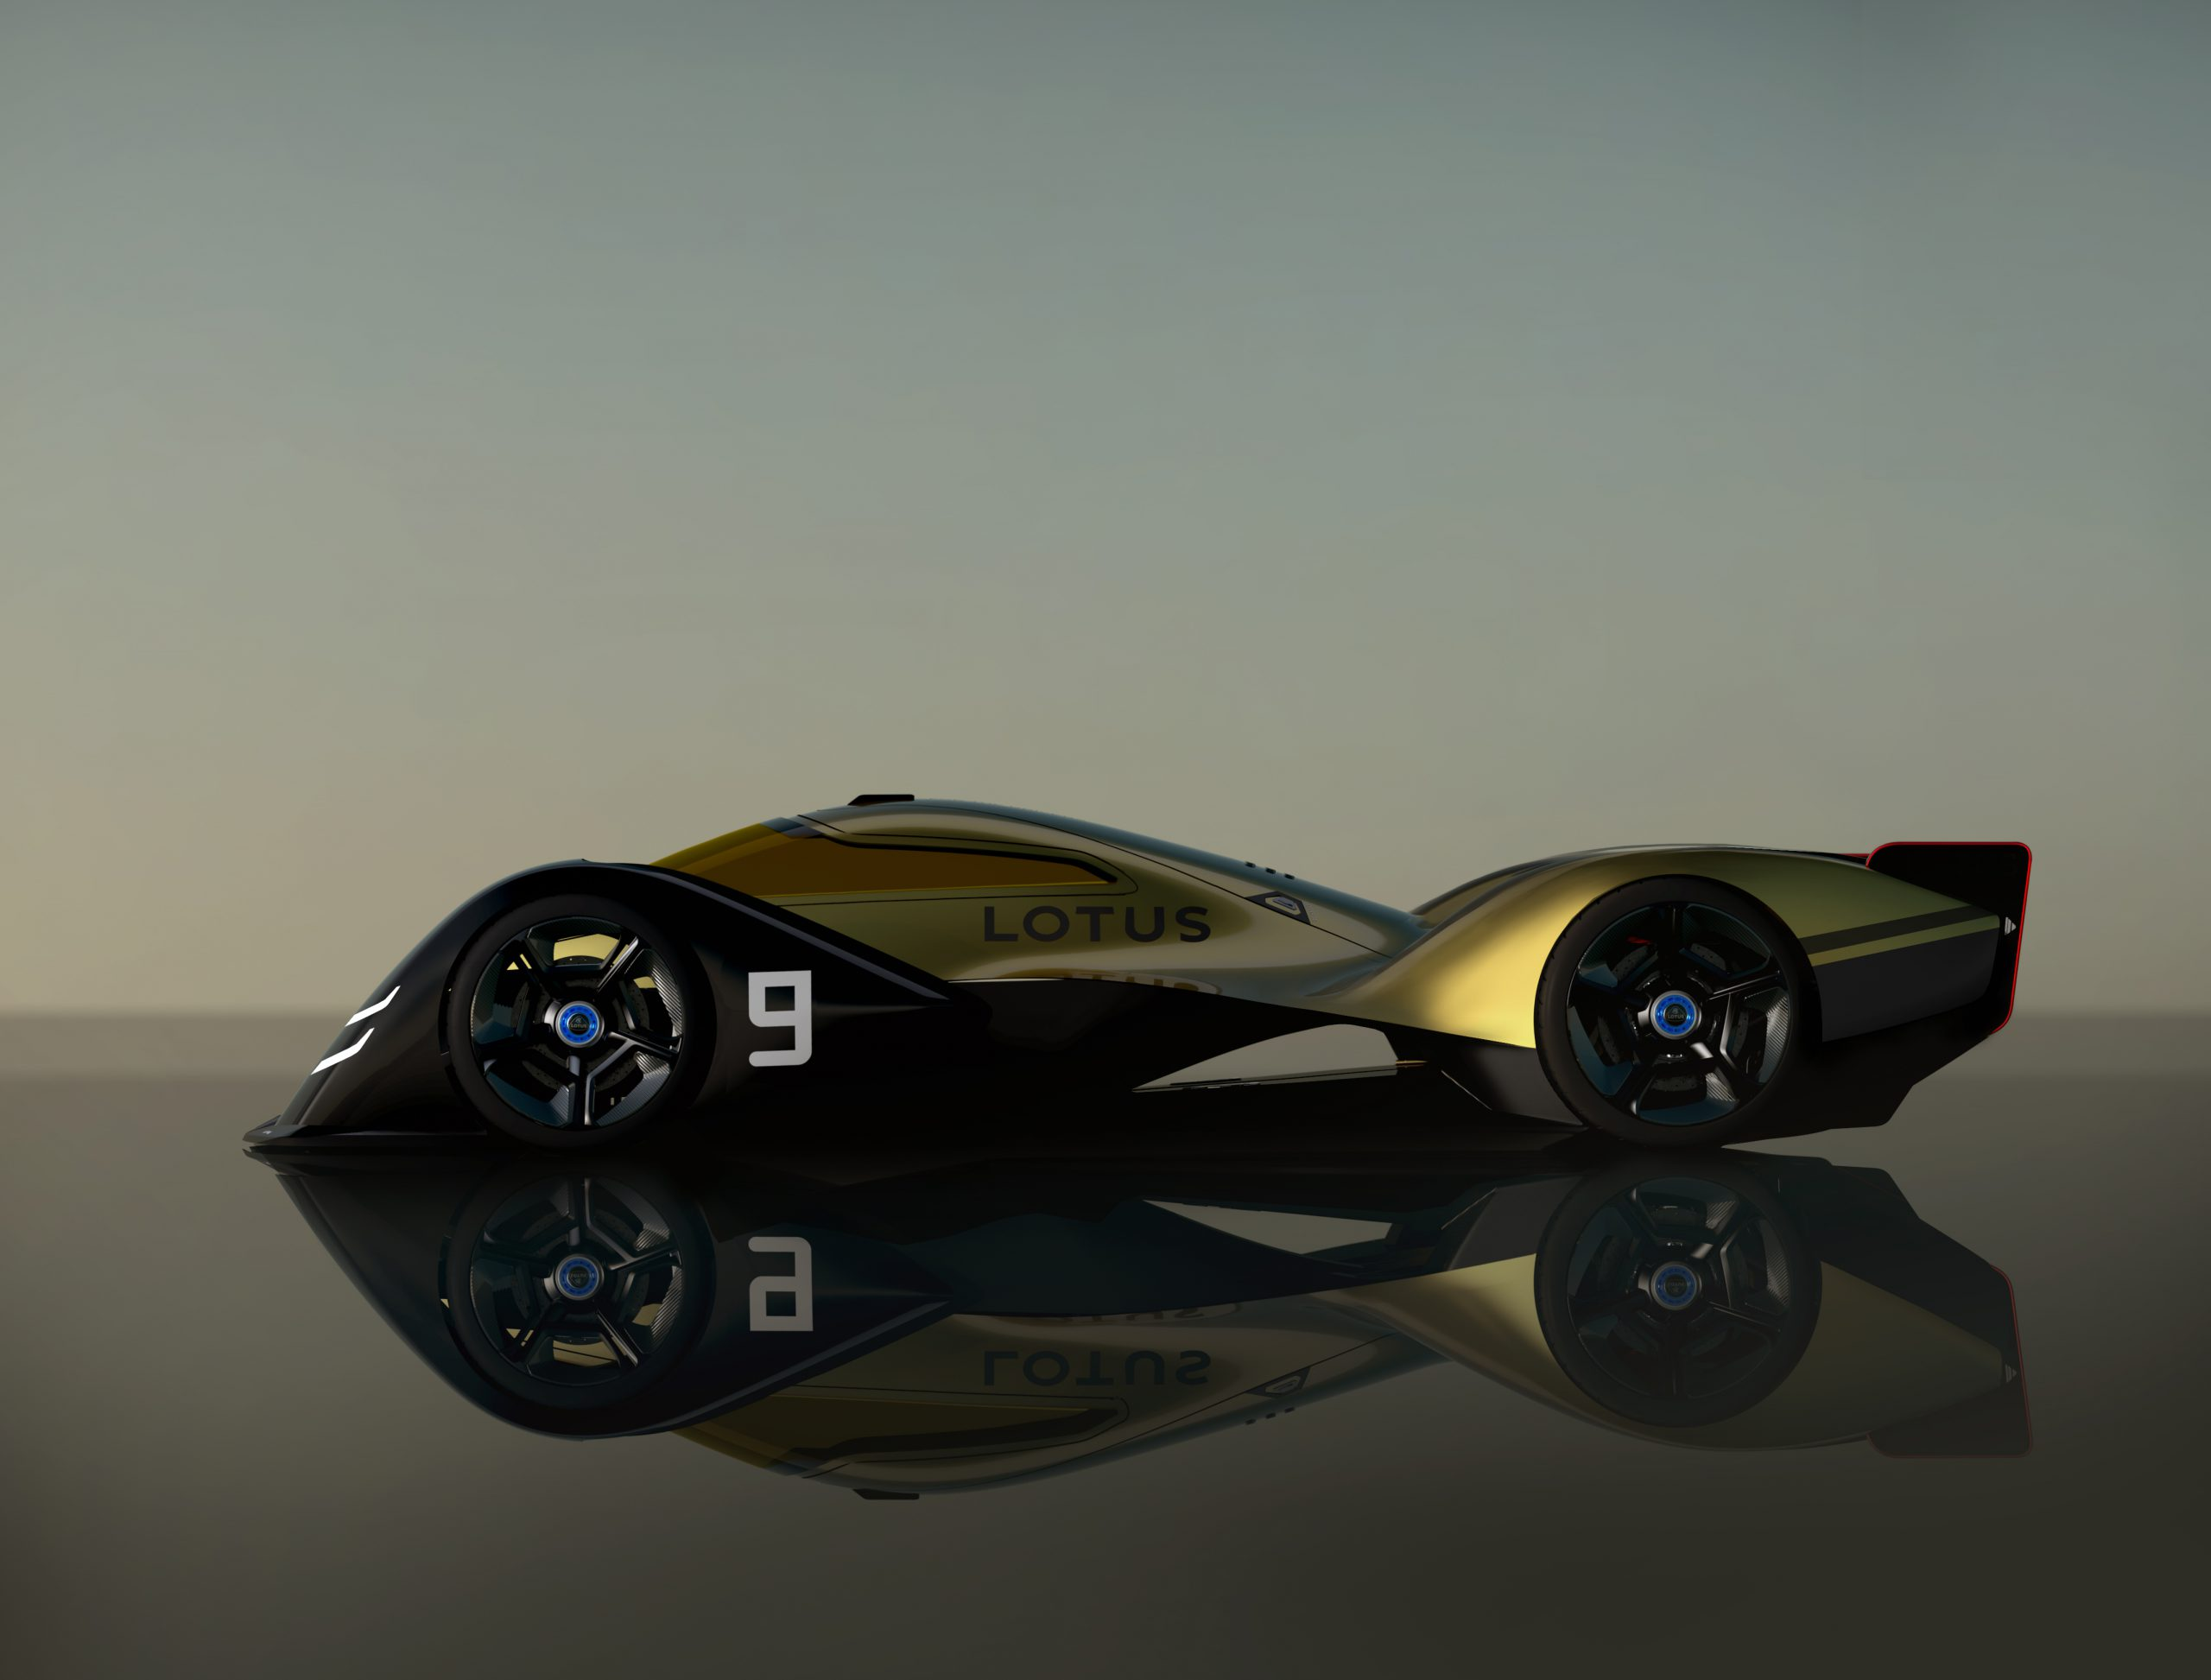 The Lotus E-R9: next-generation EV endurance racer showcases innovation in powertrains and aerodynamics